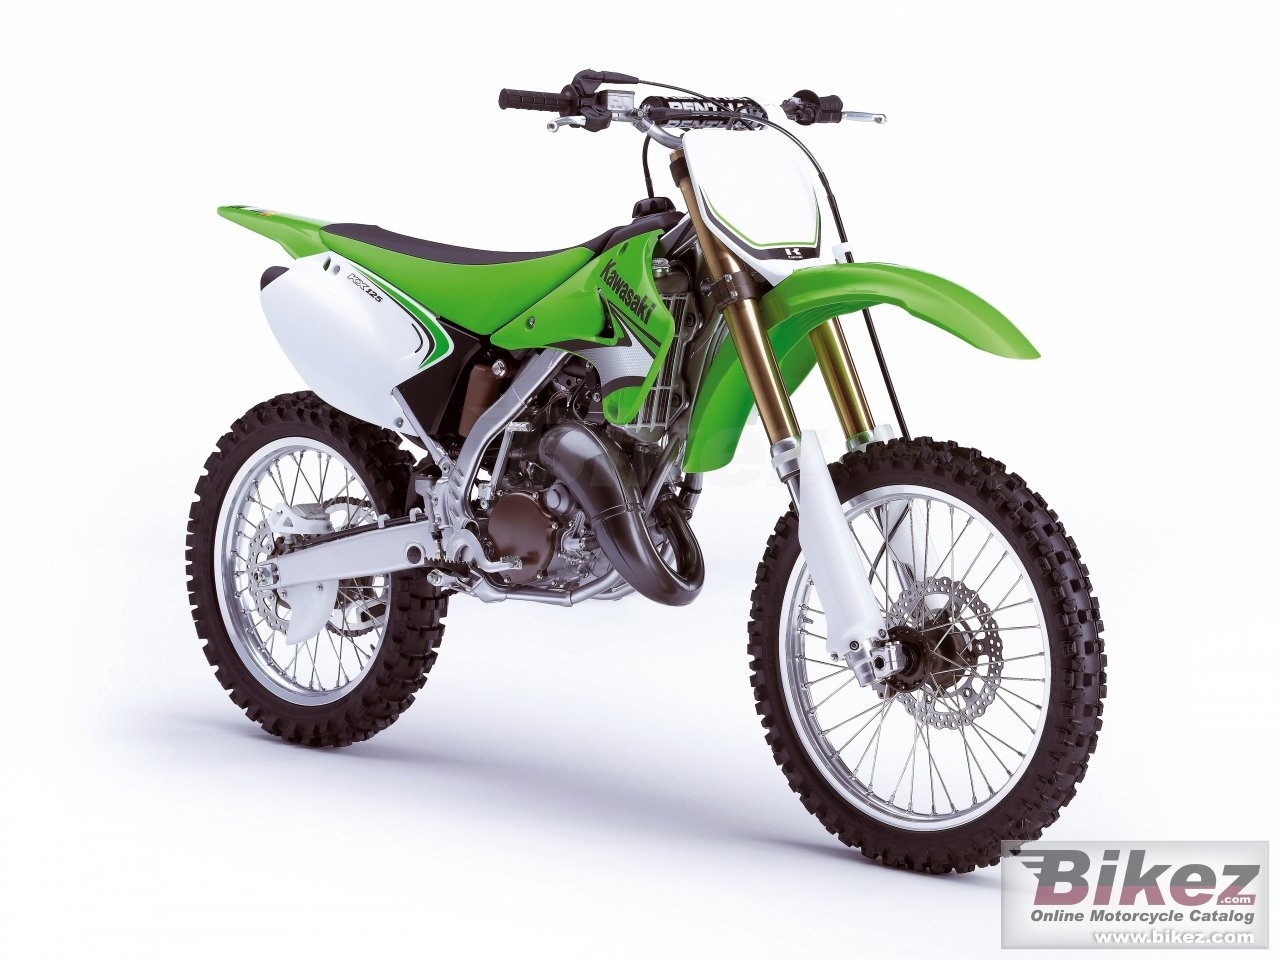 Big Kawasaki kx125 picture and wallpaper from Bikez.com